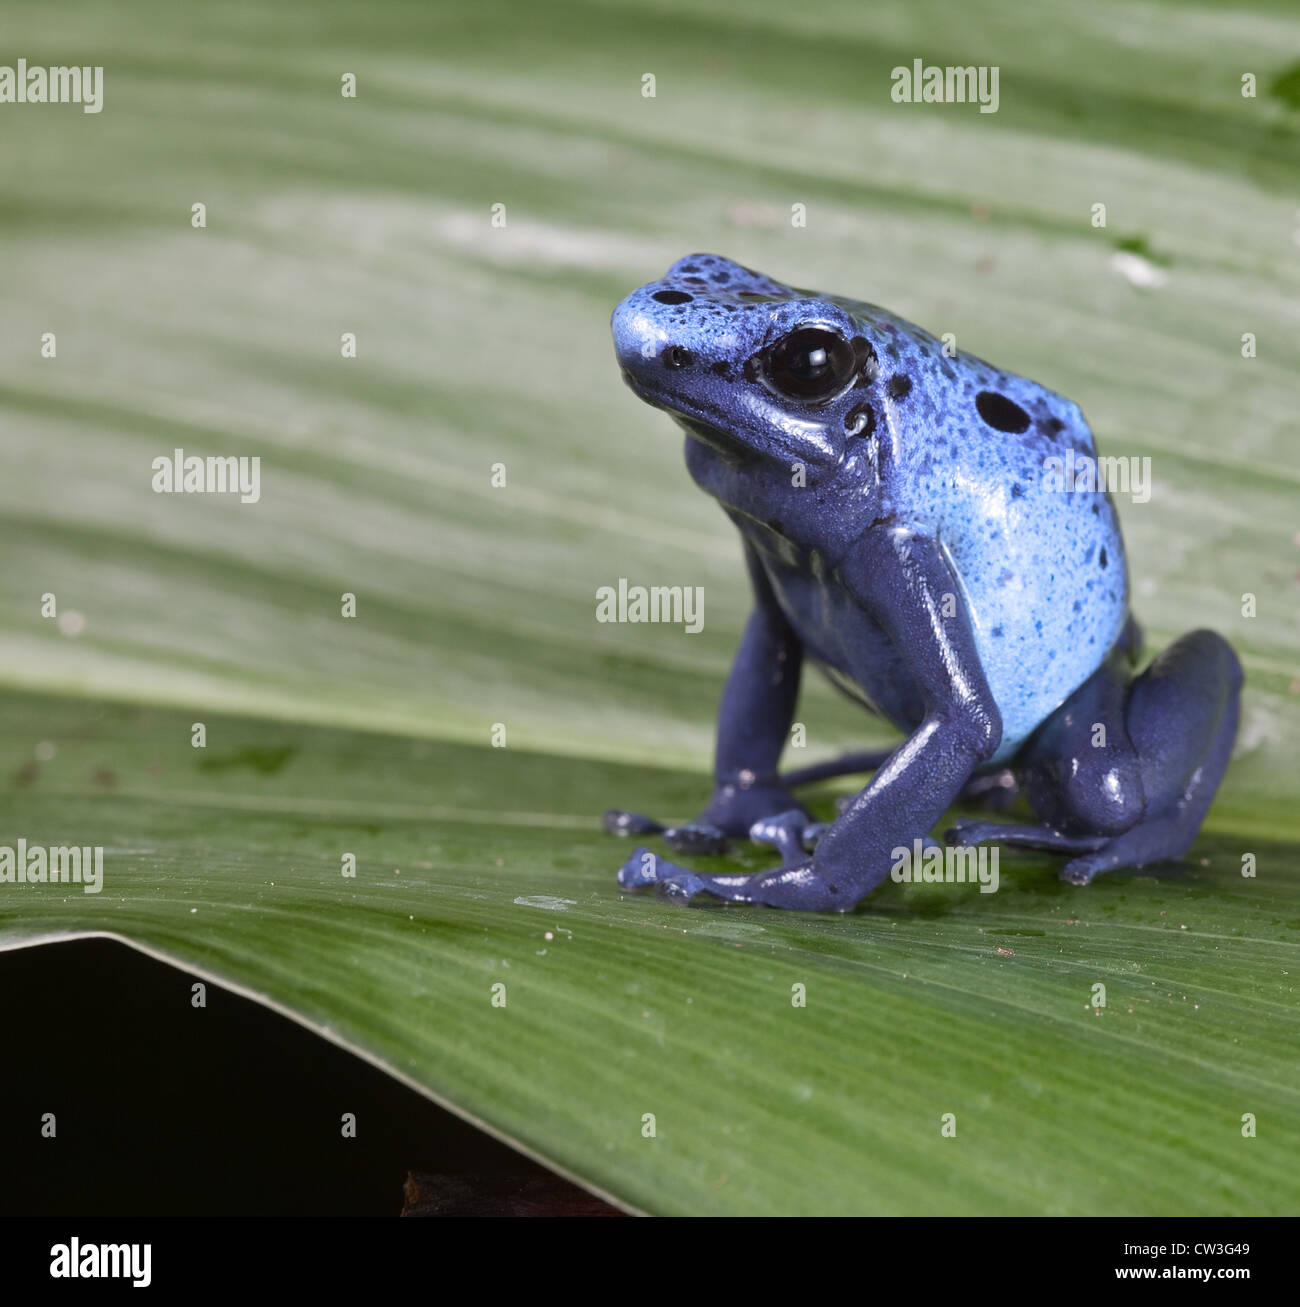 Blue poison dart frog dendrobates azureus,endangered amphibian species of tropical amazon rainforest Suriname - Stock Image